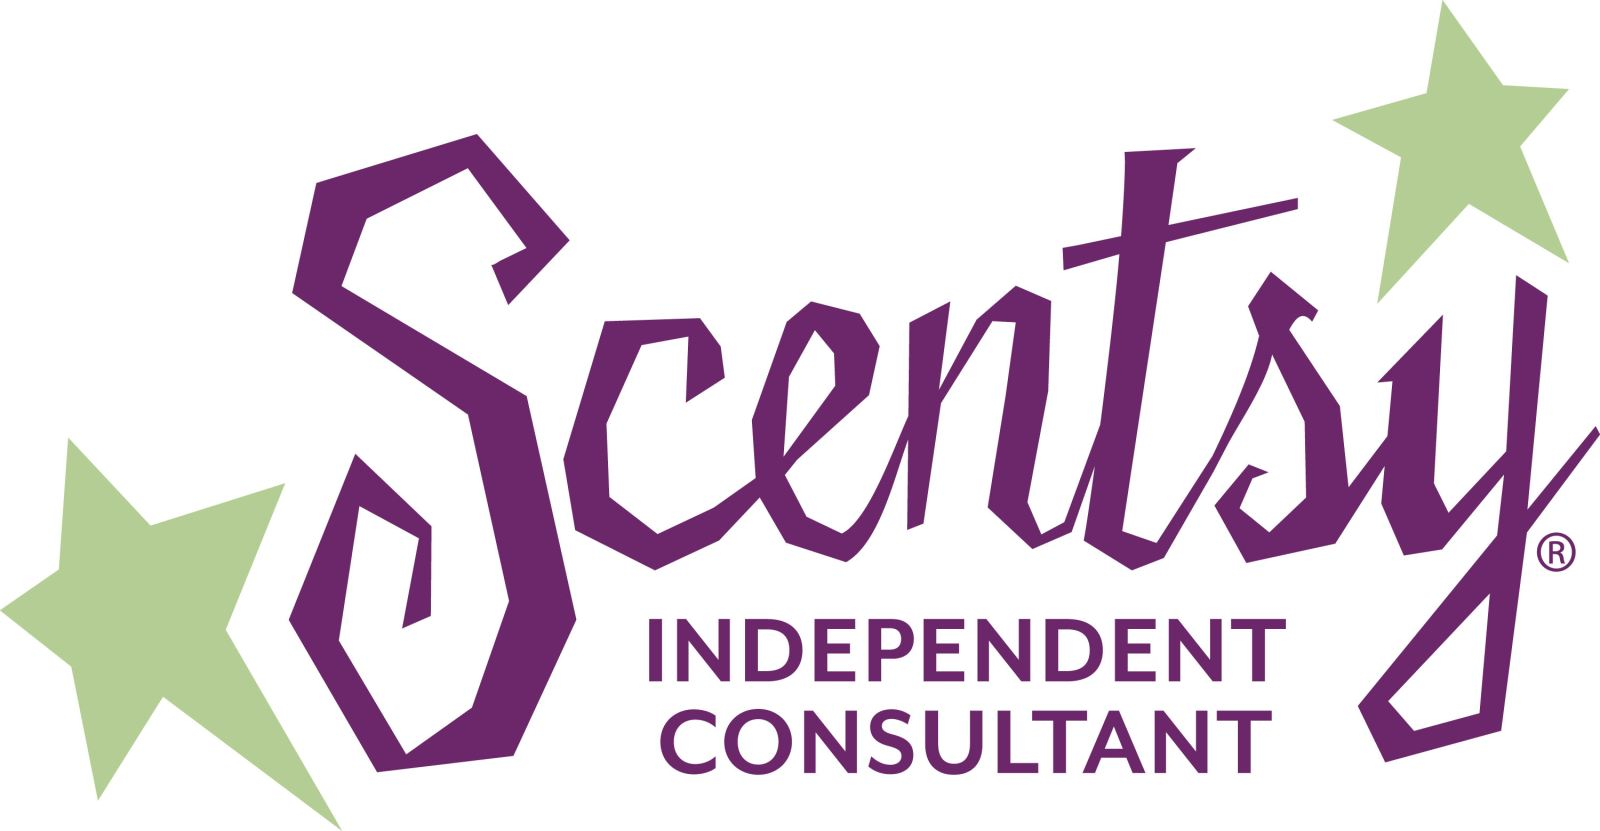 Scentsy scam exposed how to make money with the scentsy business scentsy business flashek Image collections